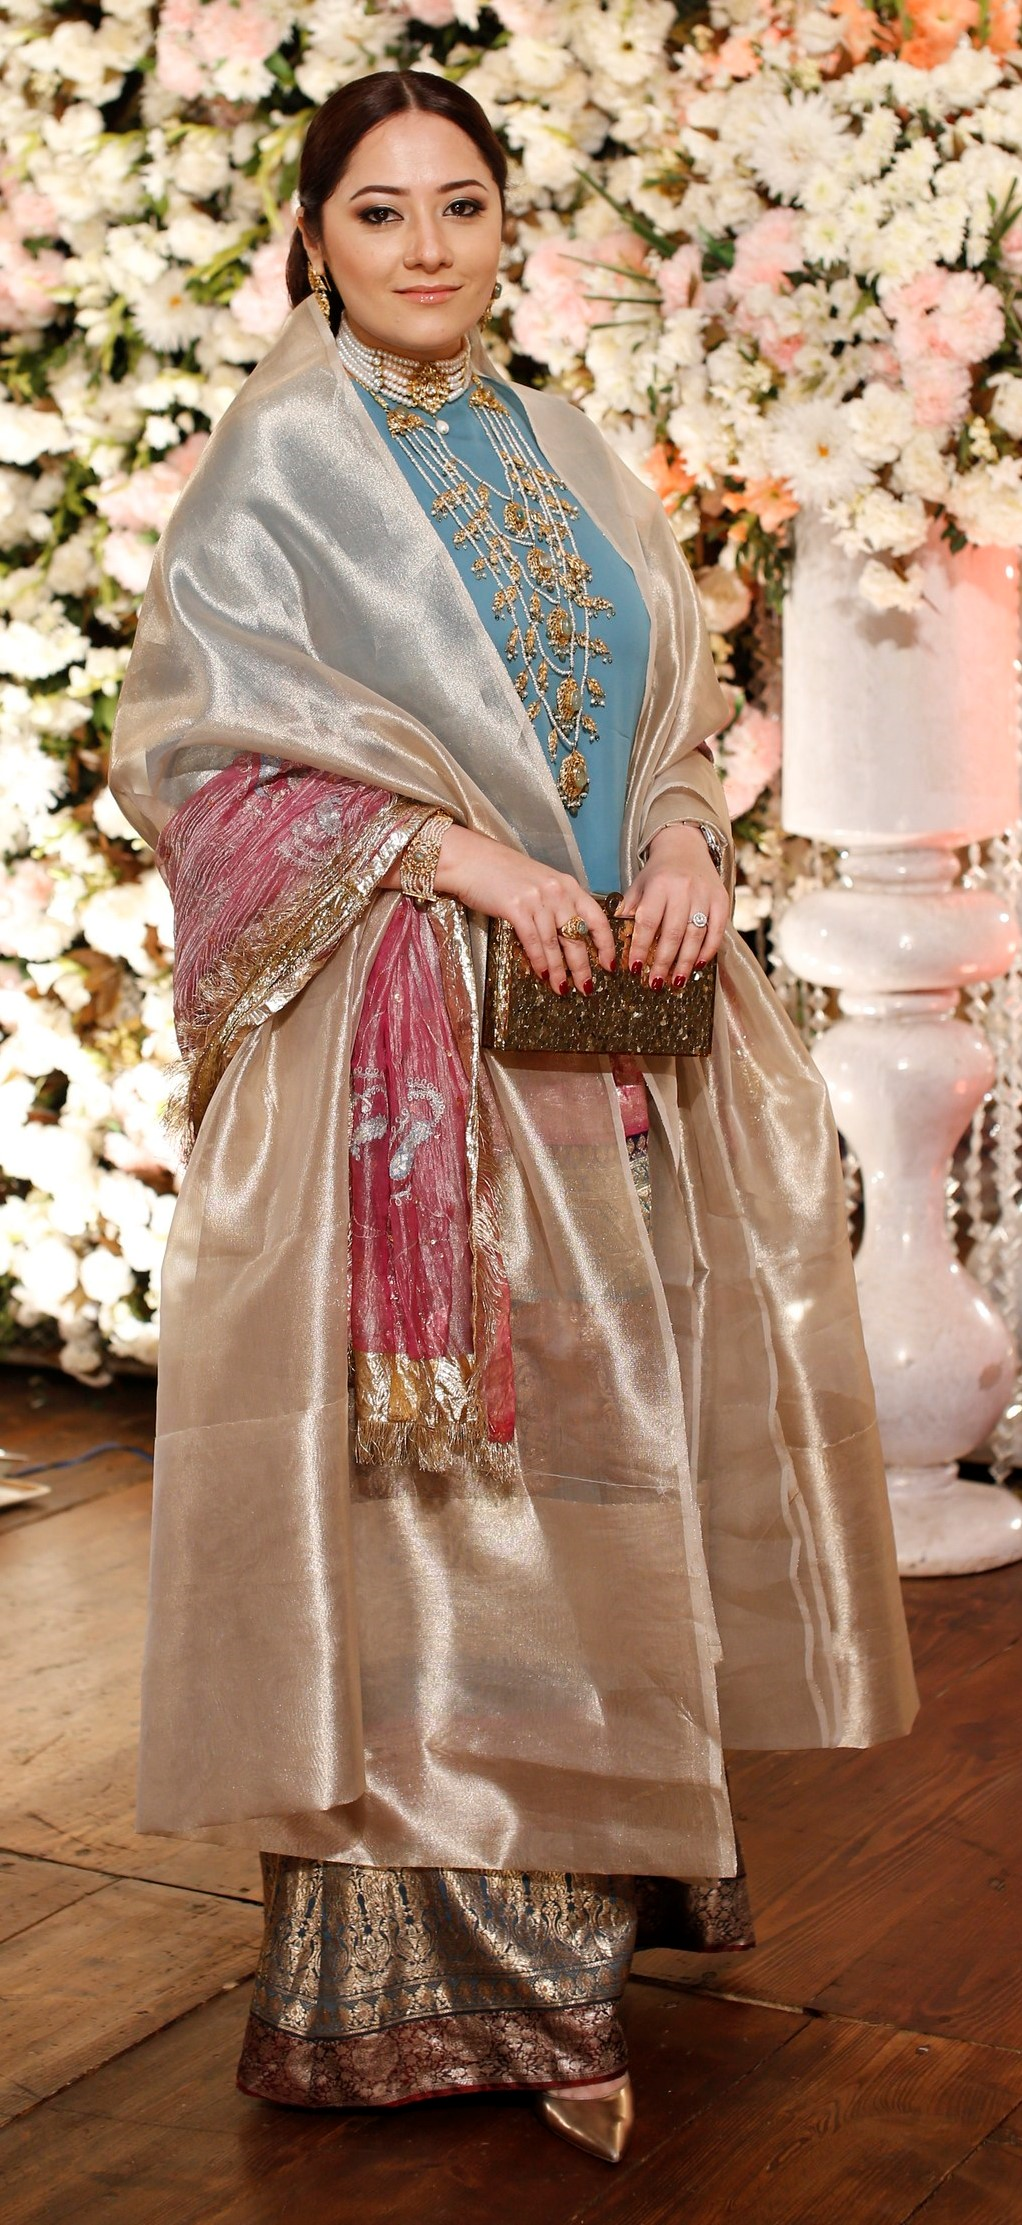 Momina Nael - We are obsessed with this old-school ensemble